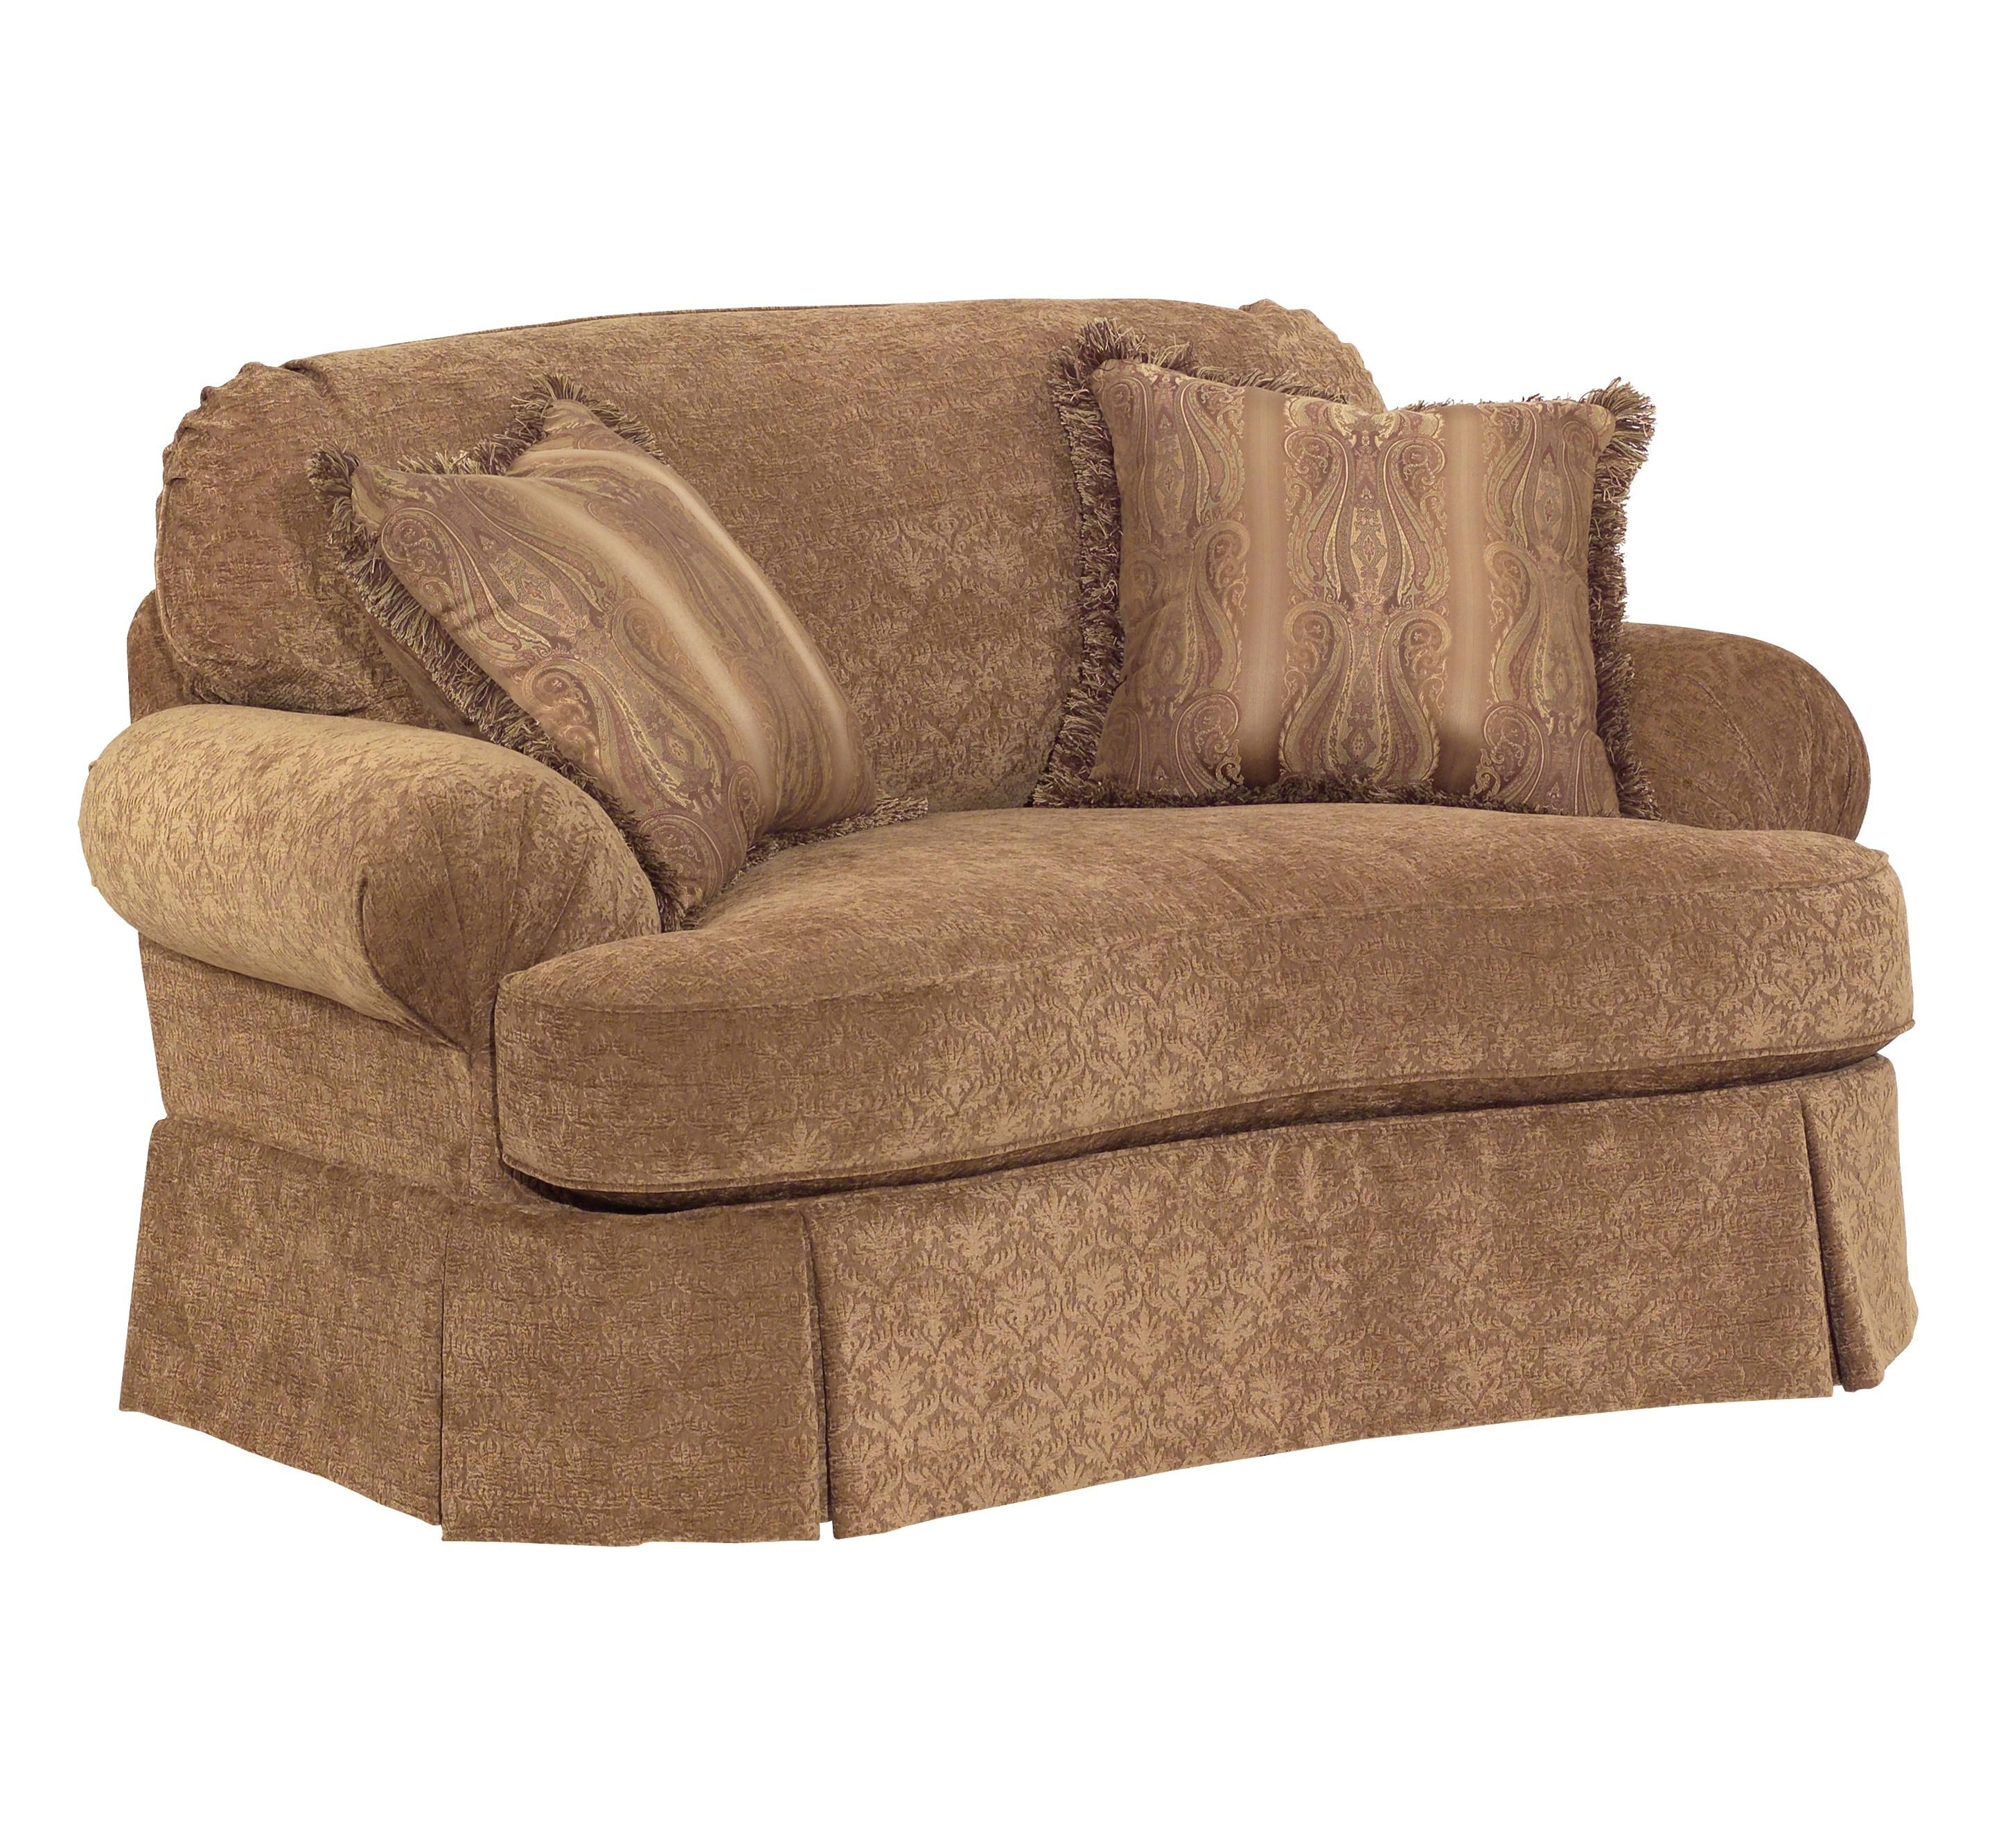 Best This Skirted Oversized Chair Will Make For A Beautiful 400 x 300